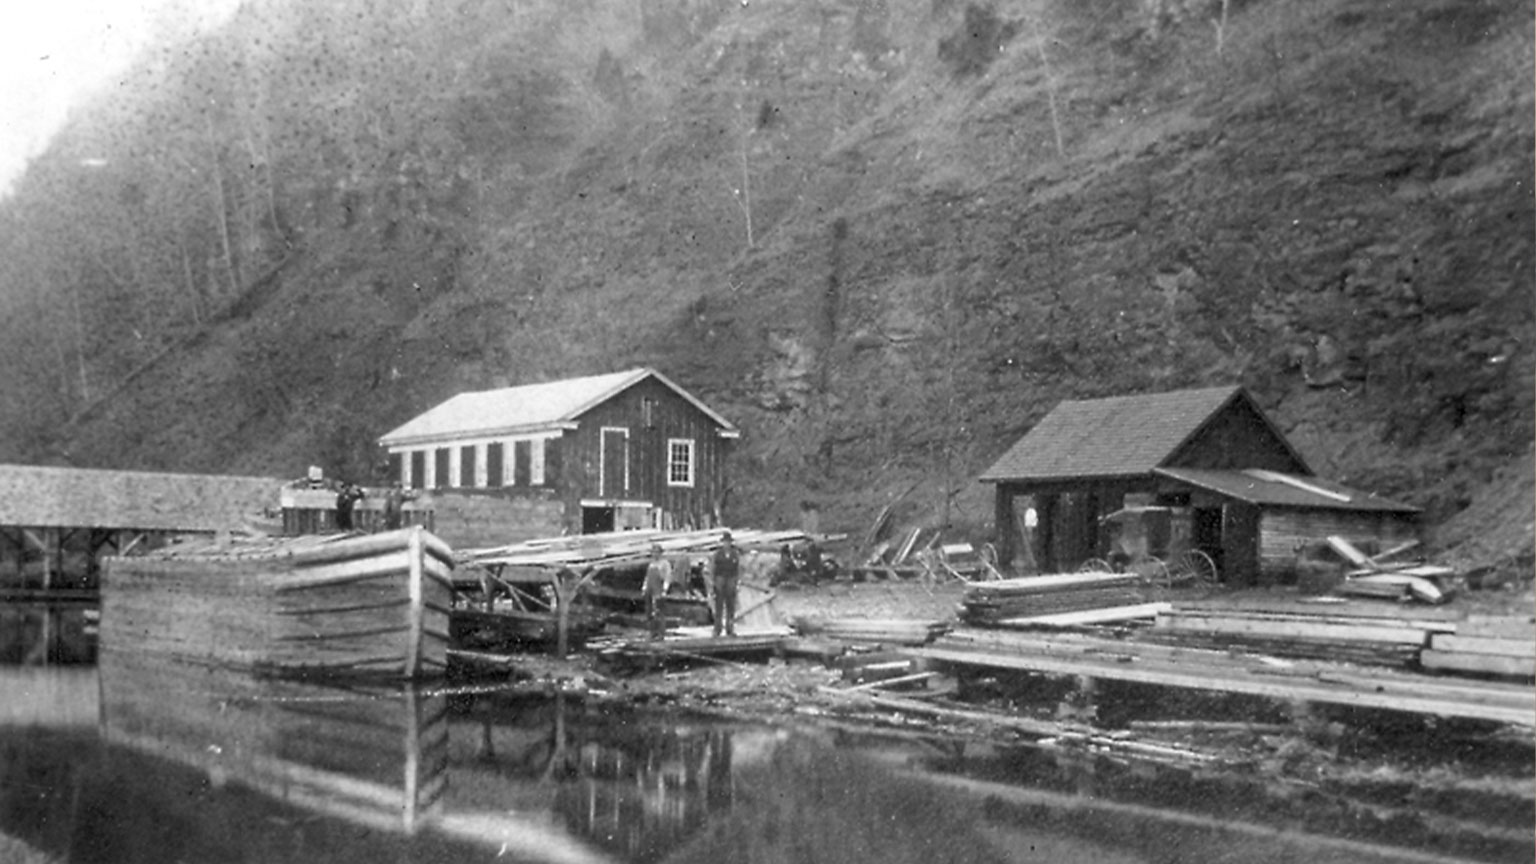 Although this is not the boatyard Mr. Gorman would have worked at it is a good example of what his probably looked like.